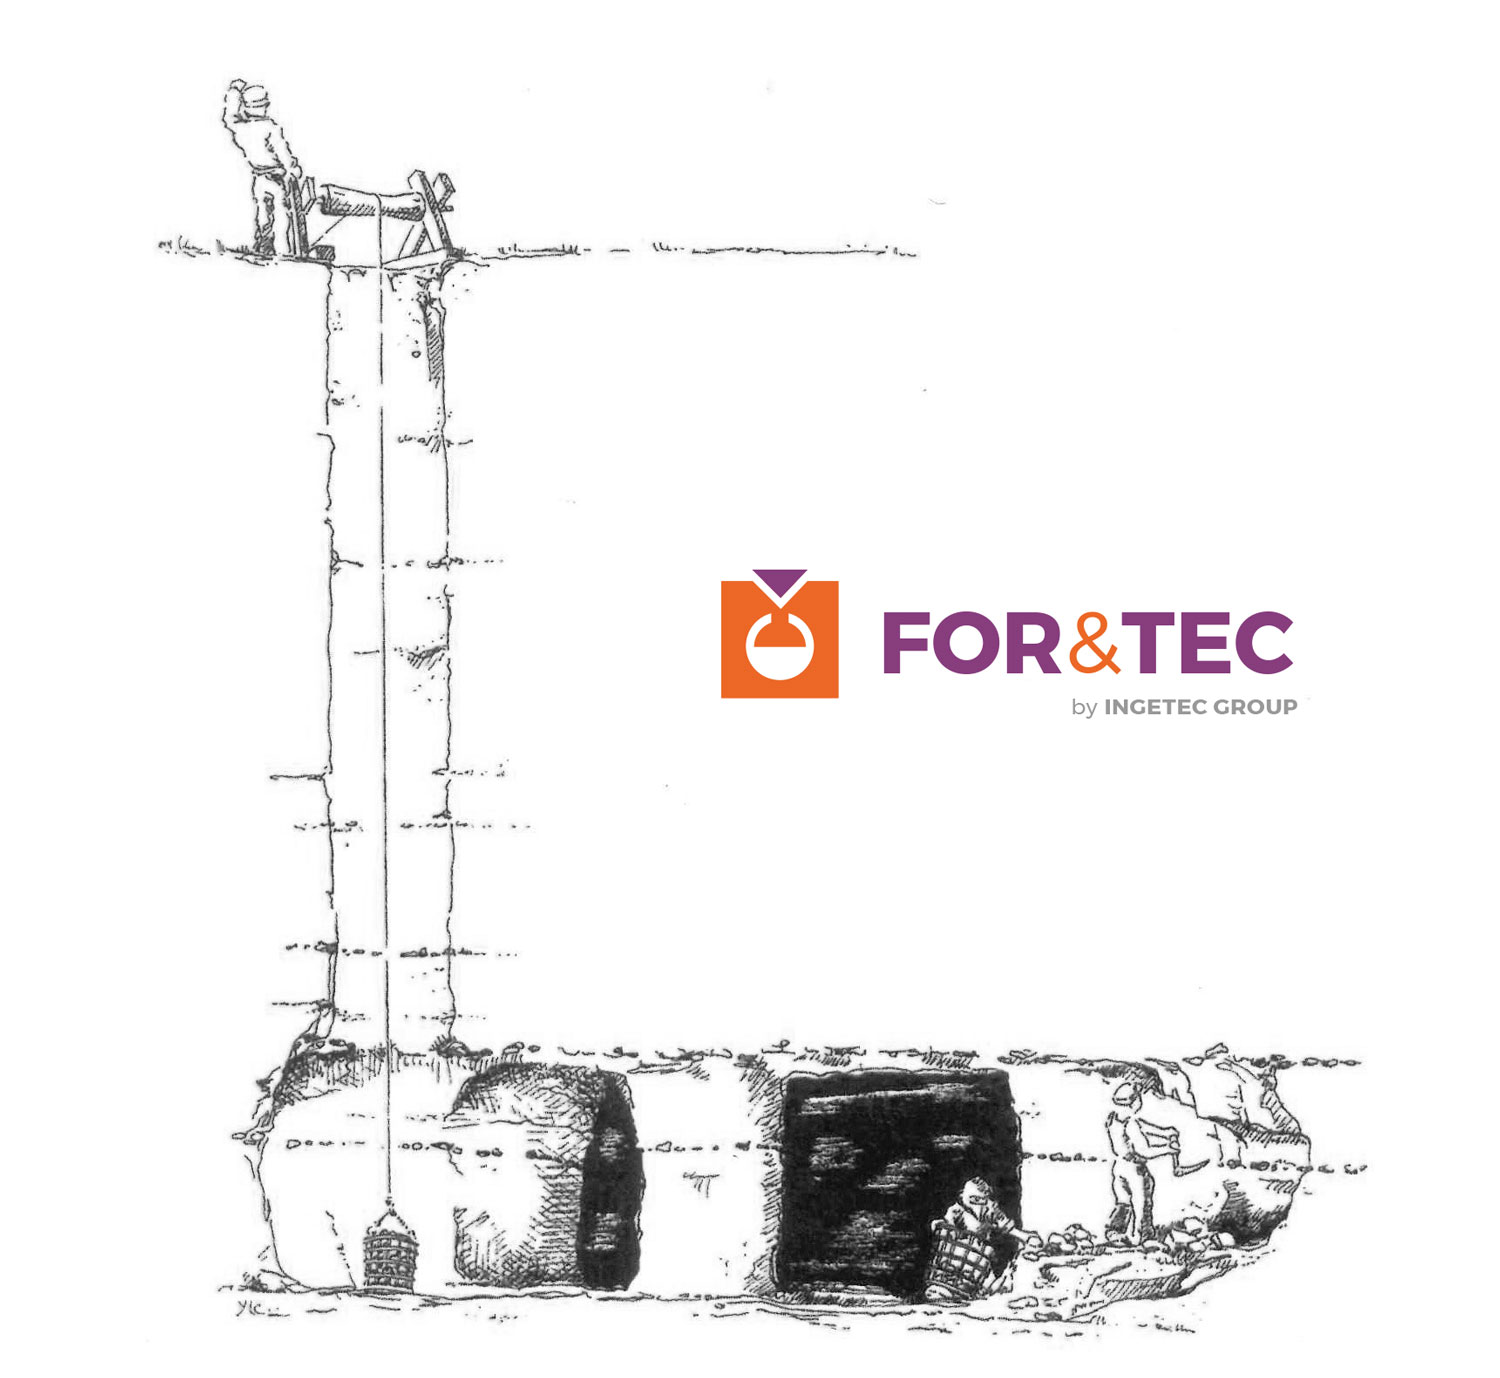 For & Tec